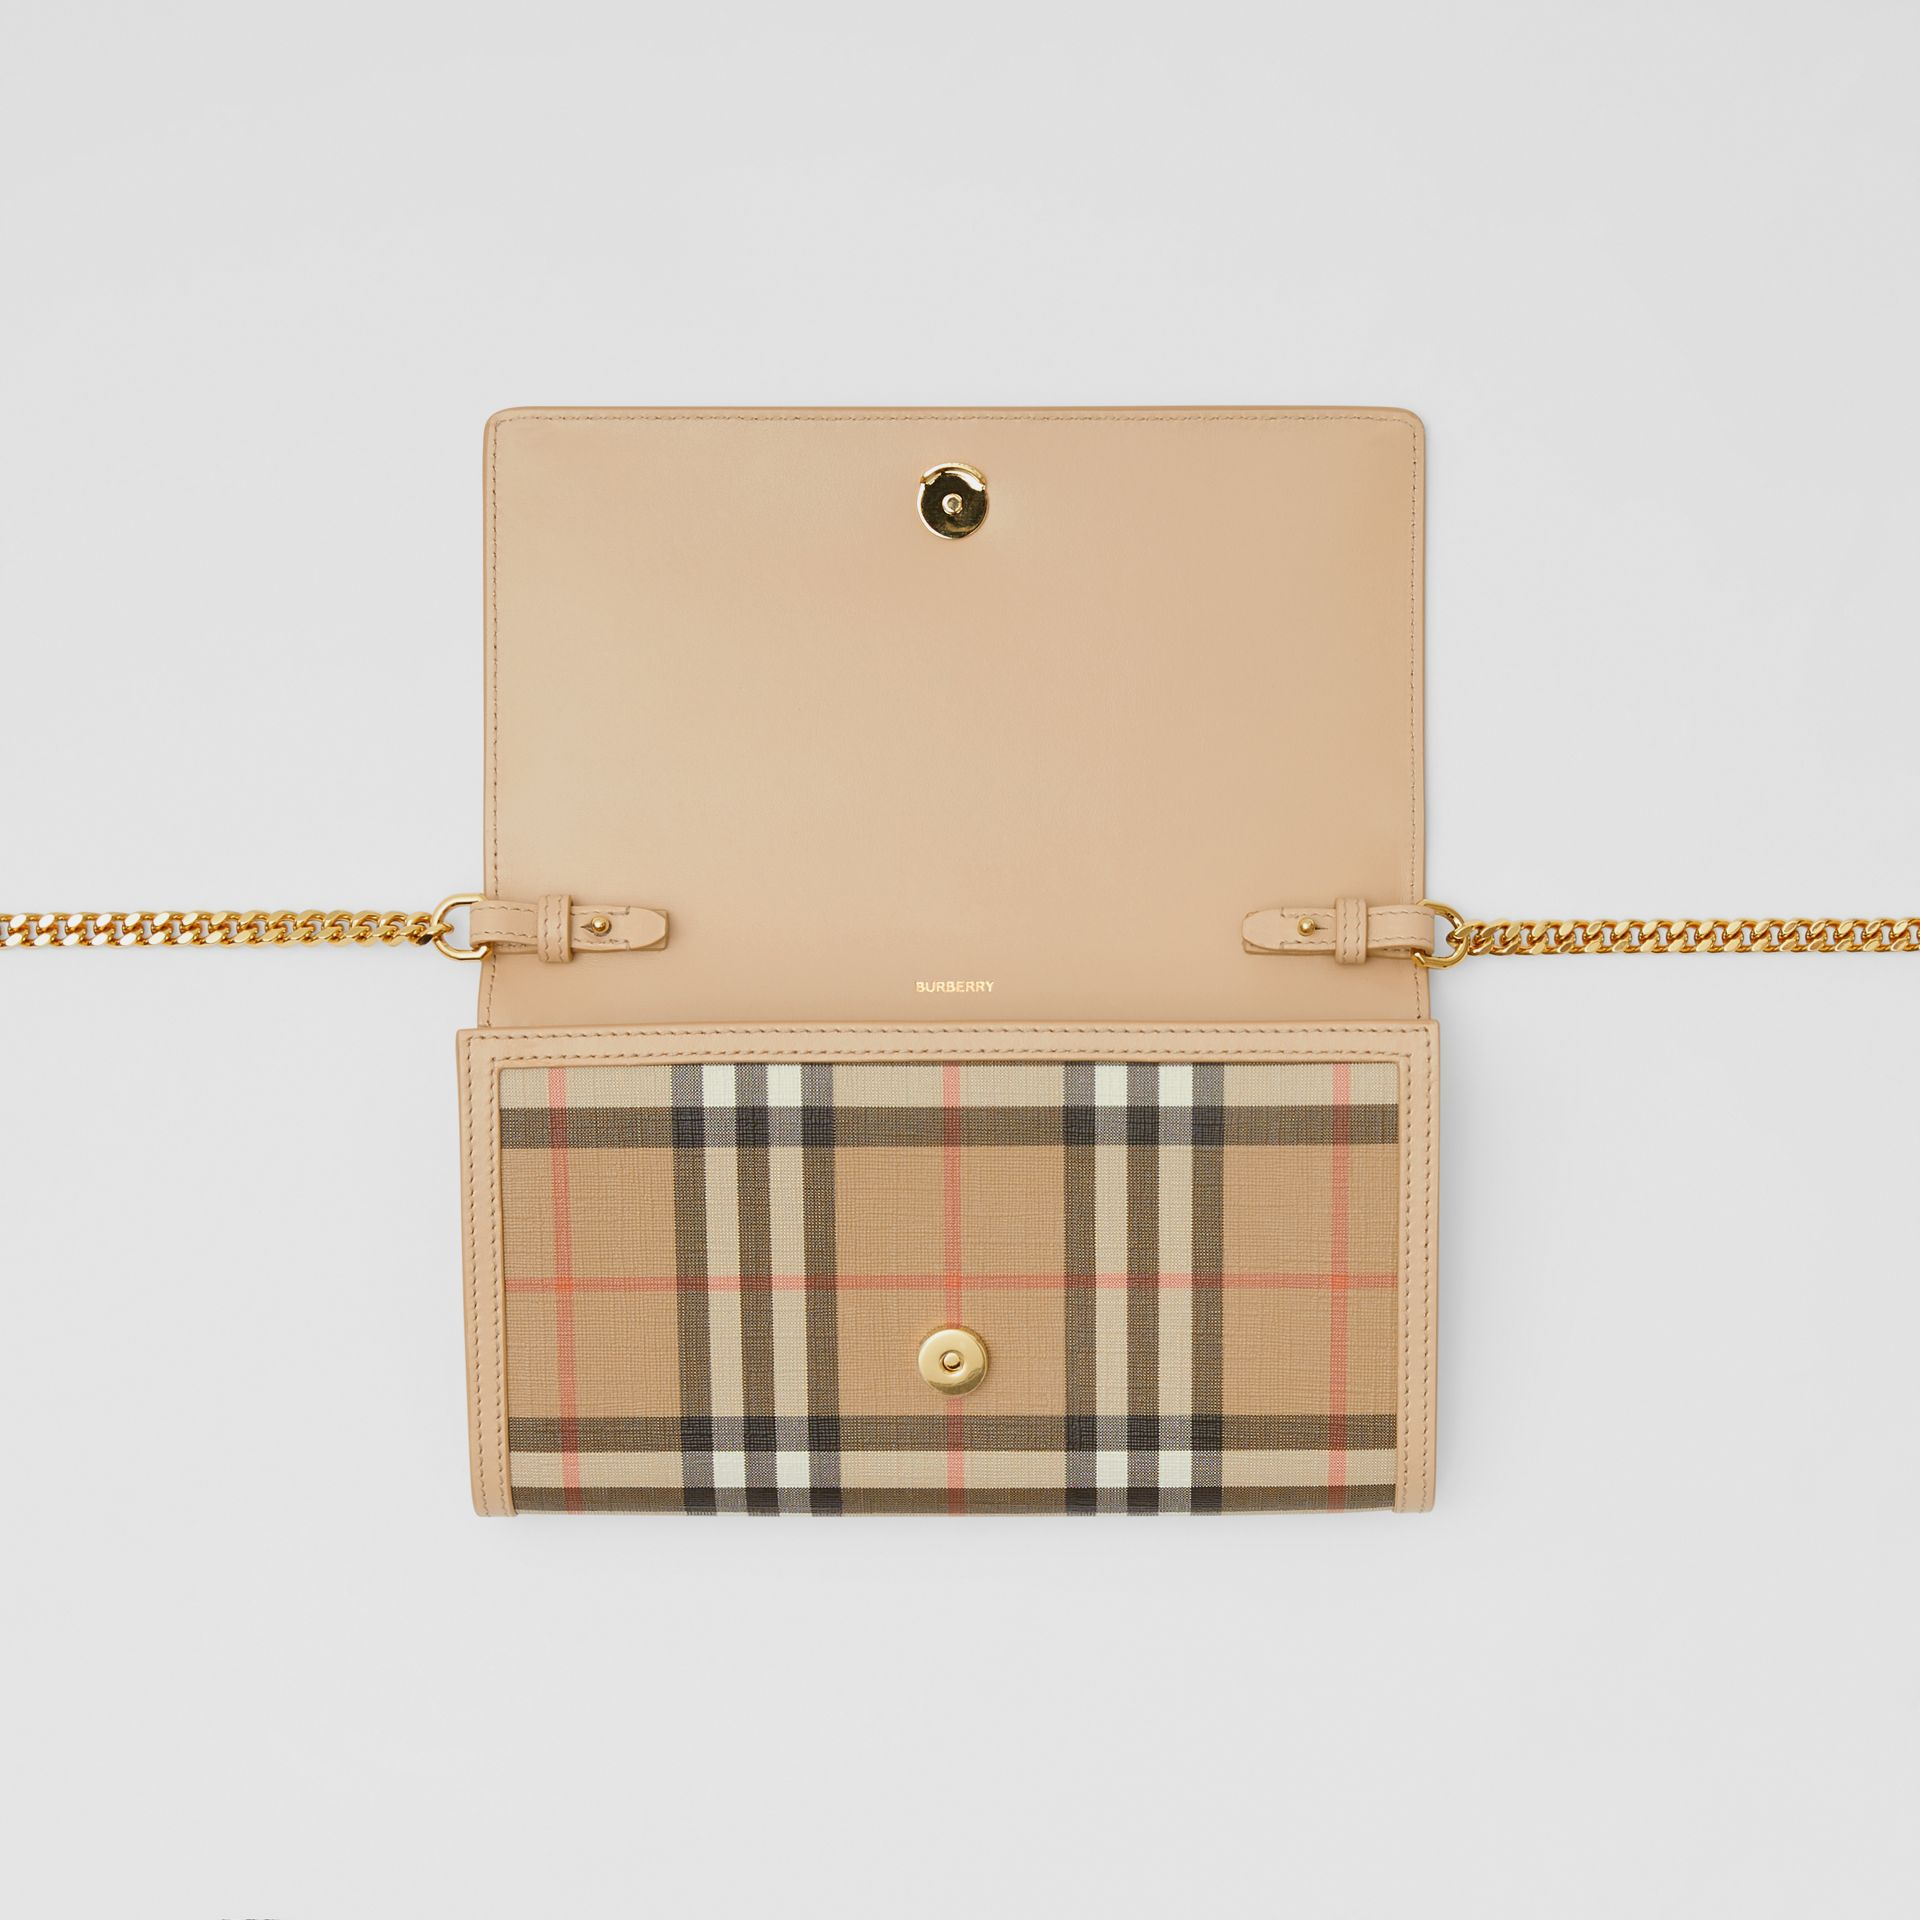 Vintage Check E-canvas Wallet with Detachable Strap in Beige - Women | Burberry - gallery image 9